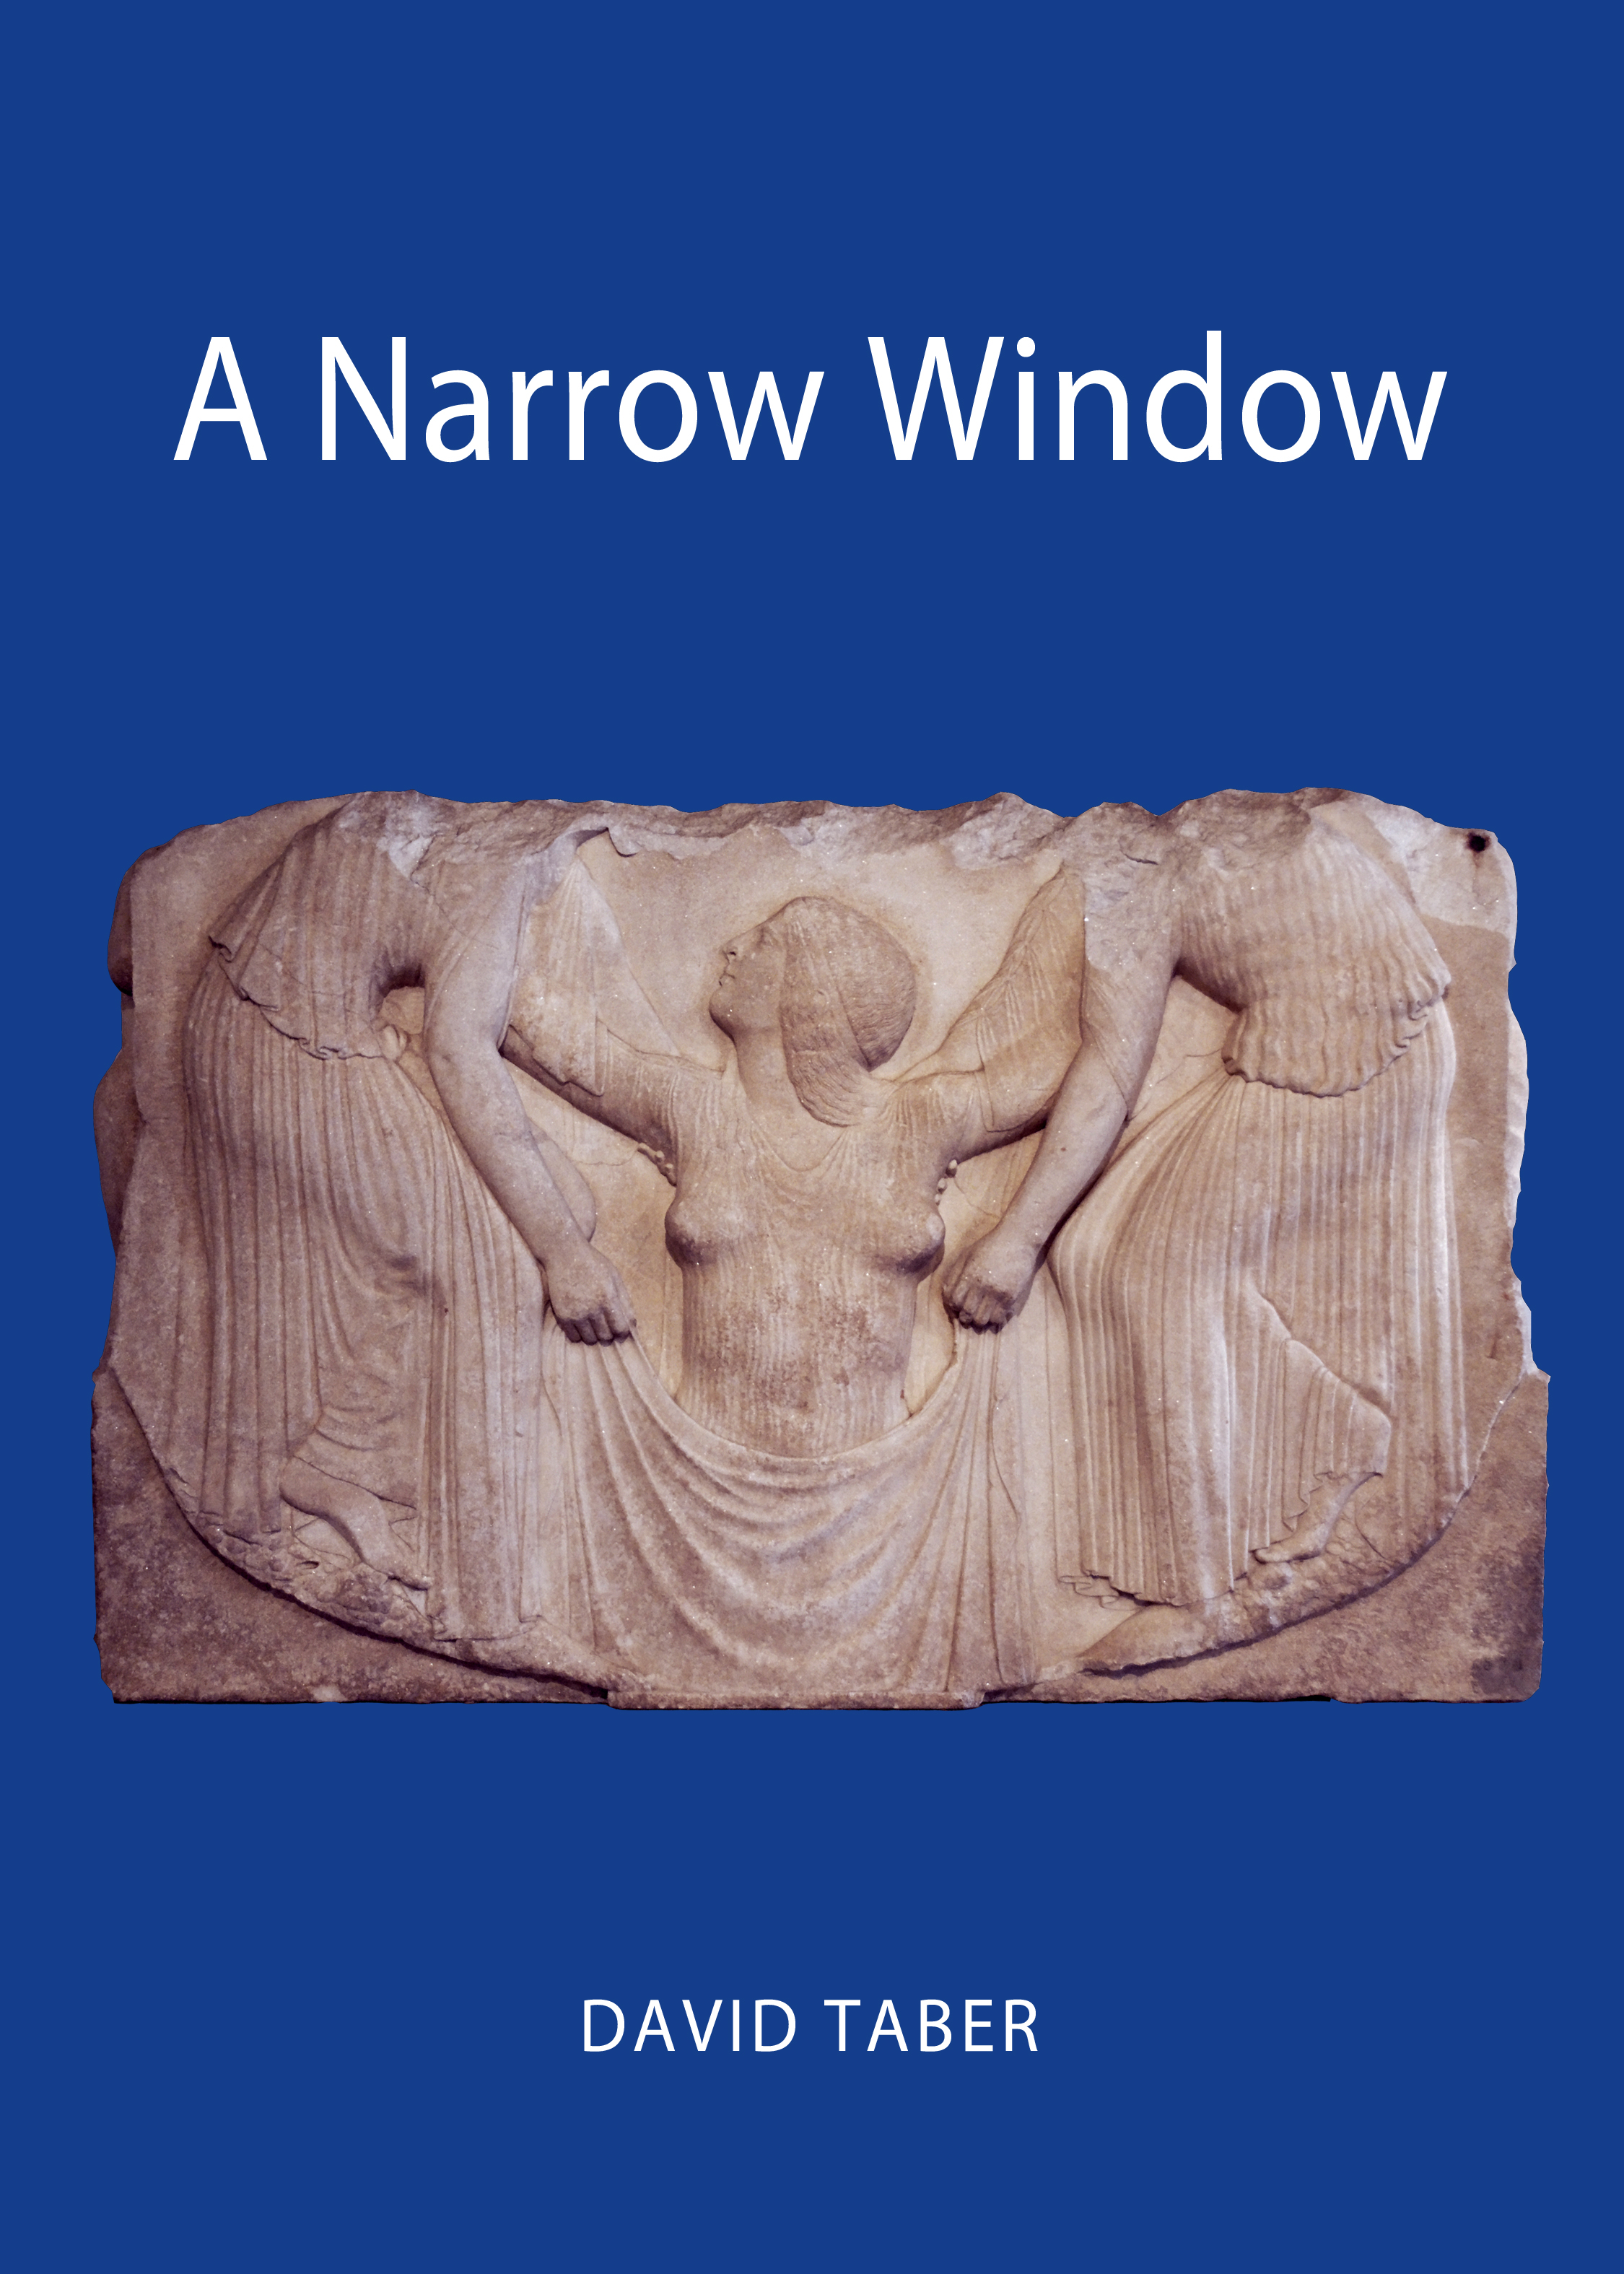 A Narrow Window